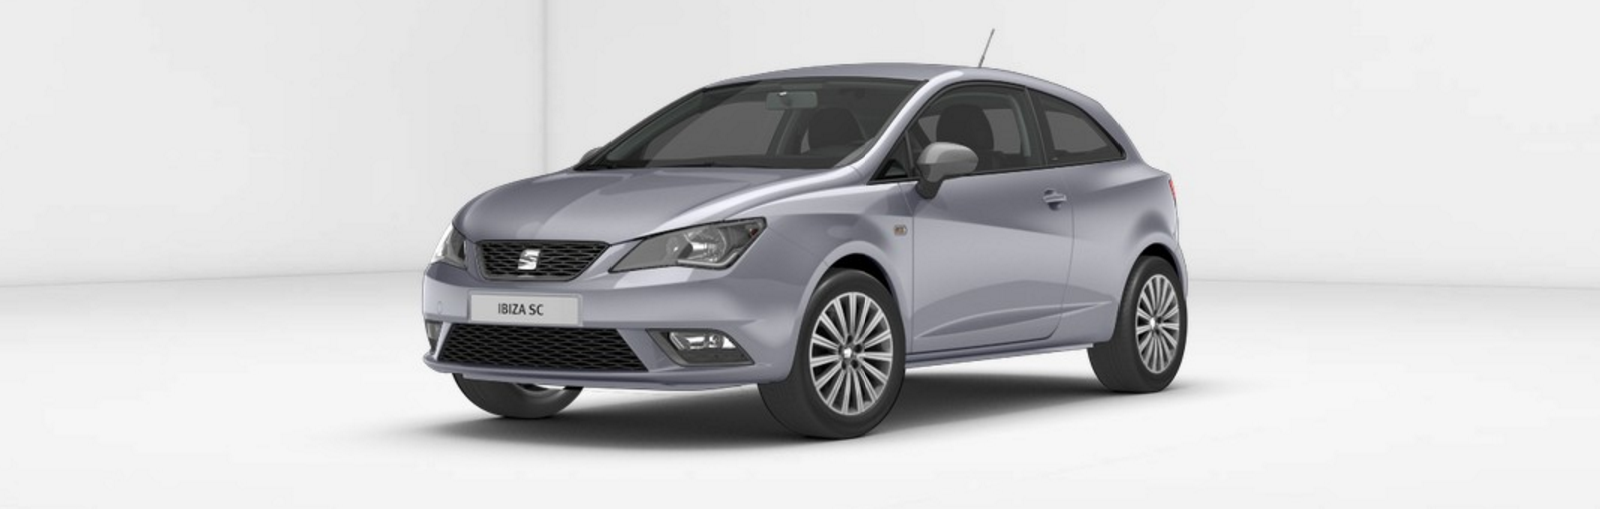 Seat Ibiza Colours Guide And Prices Carwow